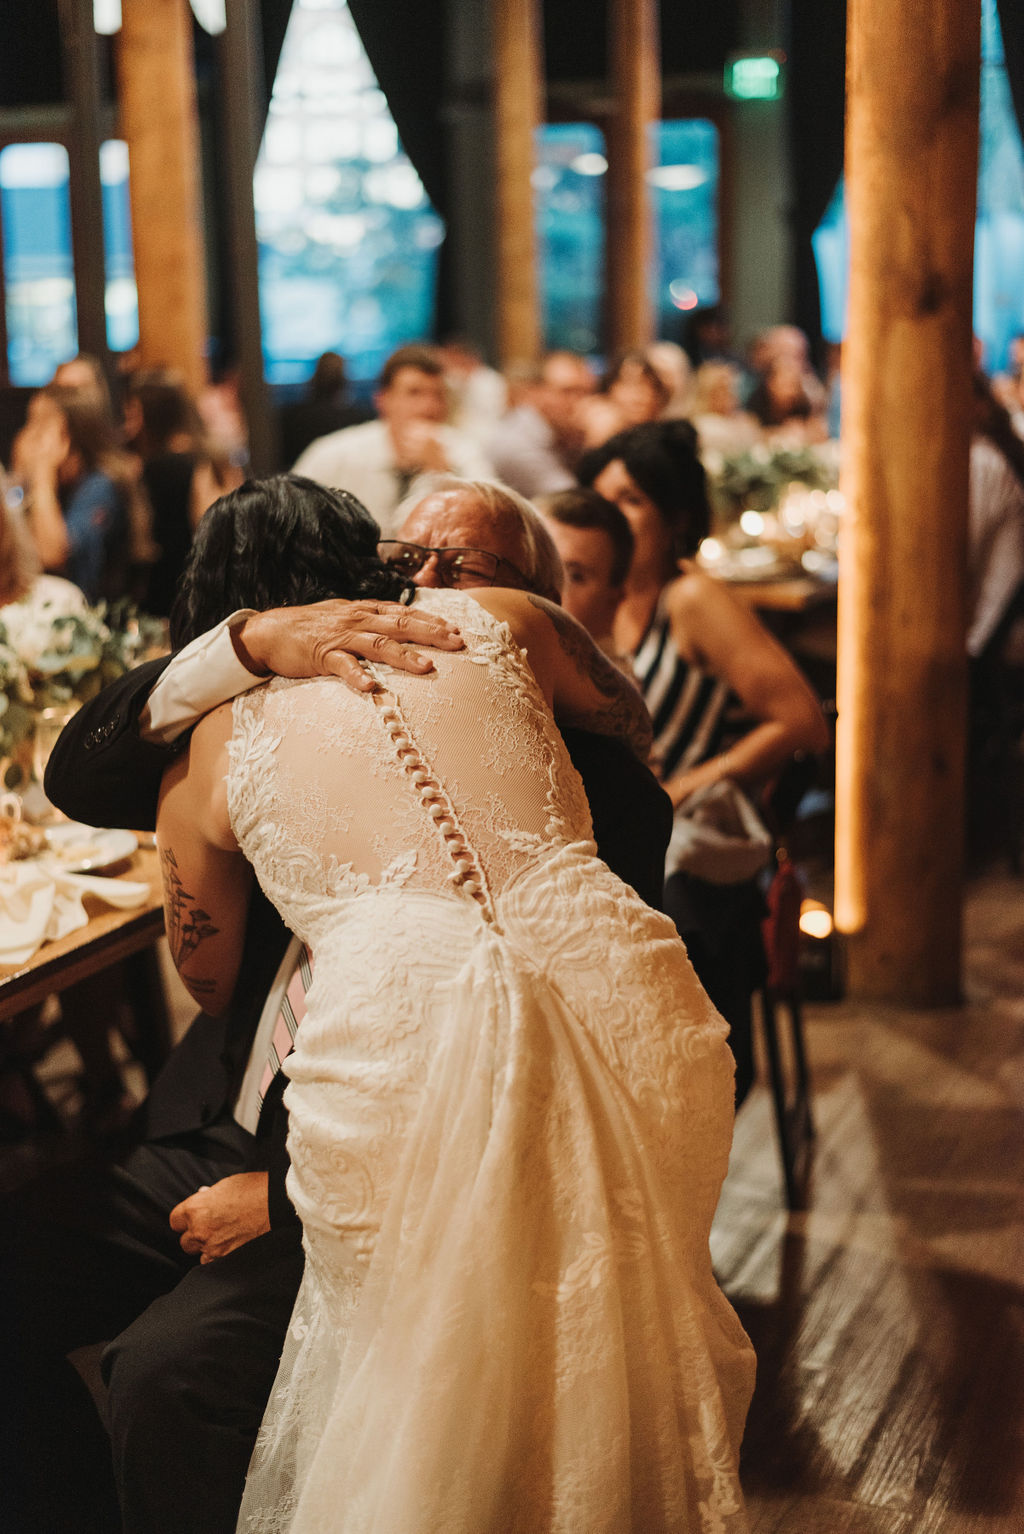 Morgan Rindhal Photograpy - Boho Industrial Wedding in Milwaukee